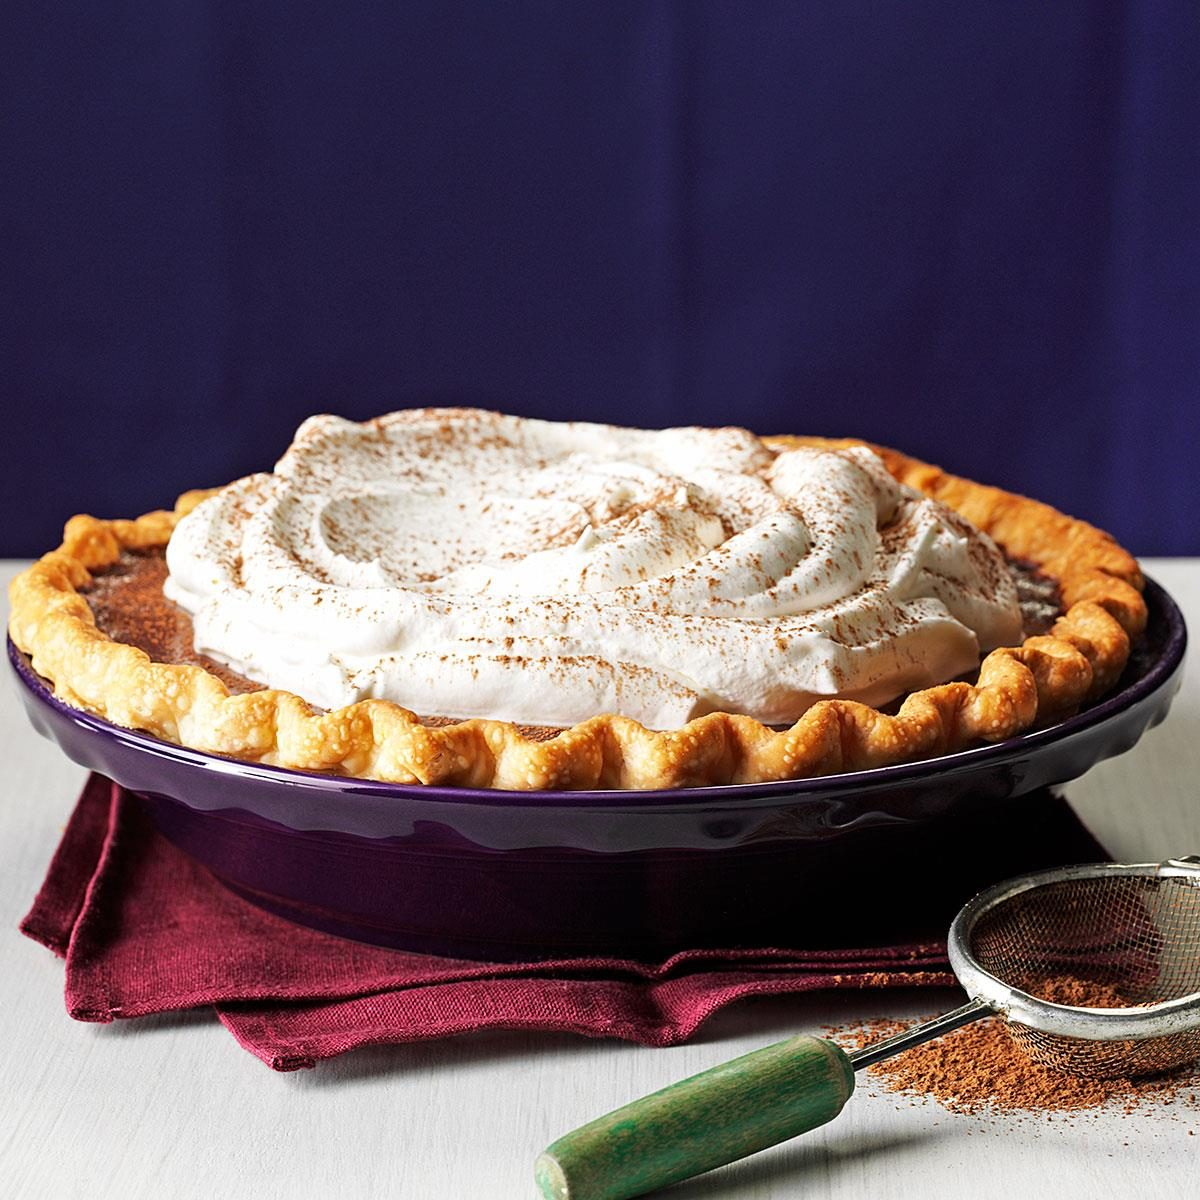 Inspired by: Bakers Square French Silk Pie